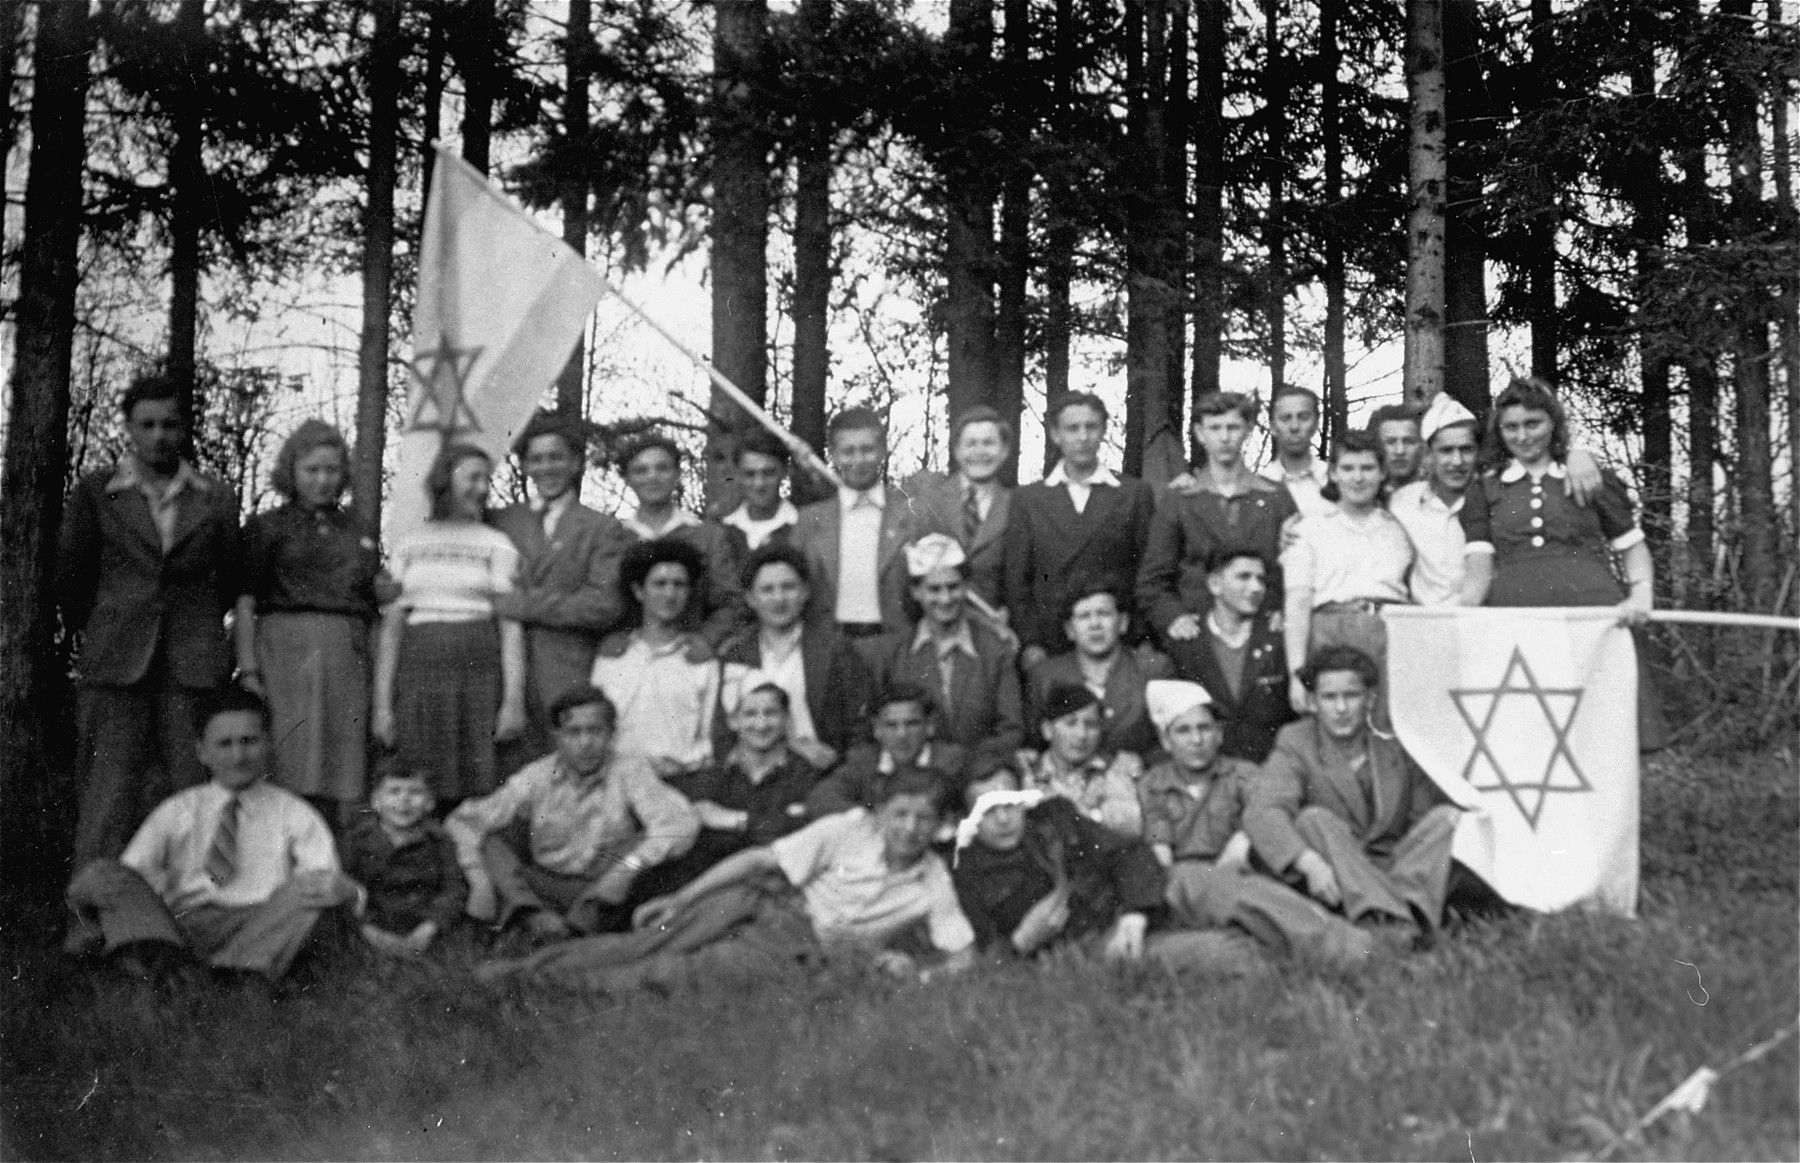 Group portrait of Zionist youth at the Kloster Indersdorf DP children's center.  Among those pictured are Michael Walter (far left), Michael Roth (waving flag, fourth from the left),  Genia Edlerman (in the second to back row, wearing a white blouse) Szlama Weichsblatt (later Sol Wechsler, far left), Nina Krieger, Naftali Steinberg (behind the third person in he front row), Avram Leder, and Nechemia Edlerman (seated, fourth from left wearing a white hat.)